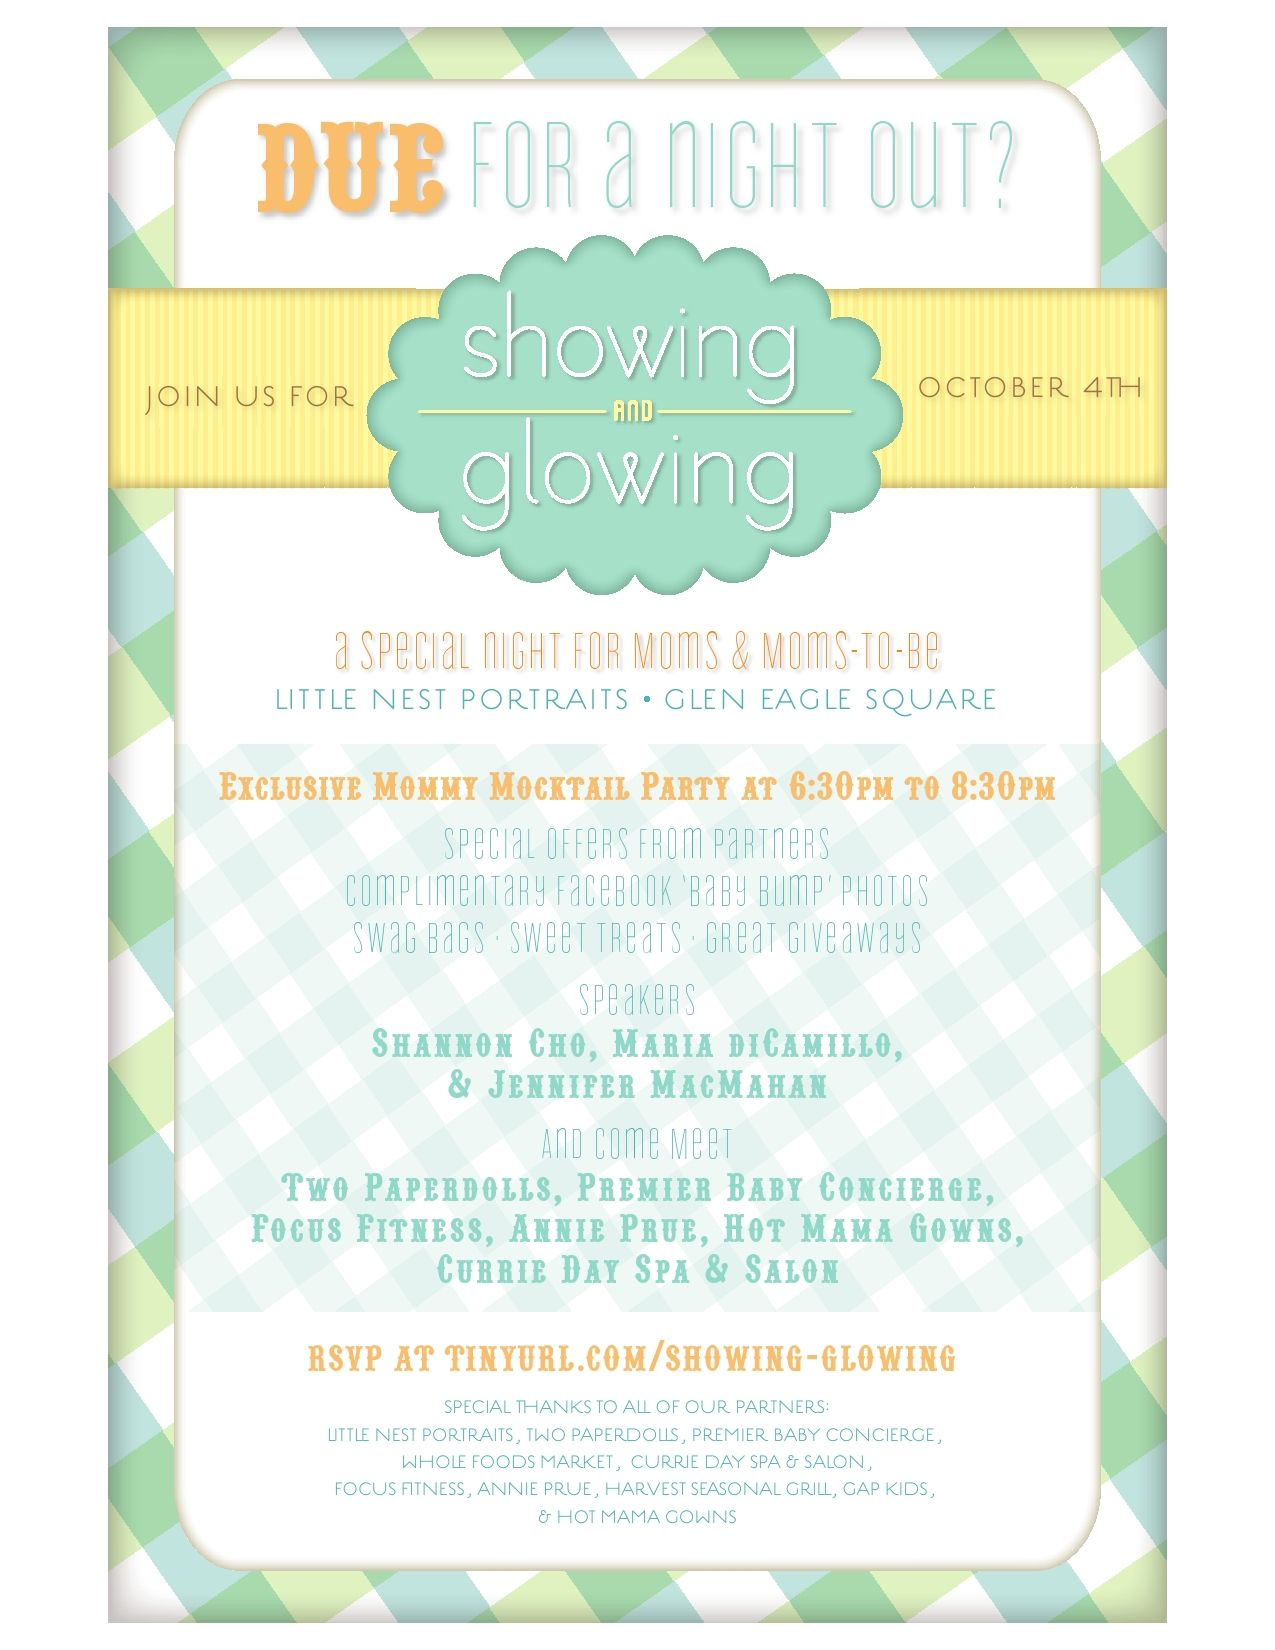 October 4th from 6:30 to 8:30 Little Nest Portraits, Glen Mills is having a Showing and Glowing event for Mommy's and Mommy's to Be...stop in for a Mocktail Party, Give-a-ways, Swag Bags and More!